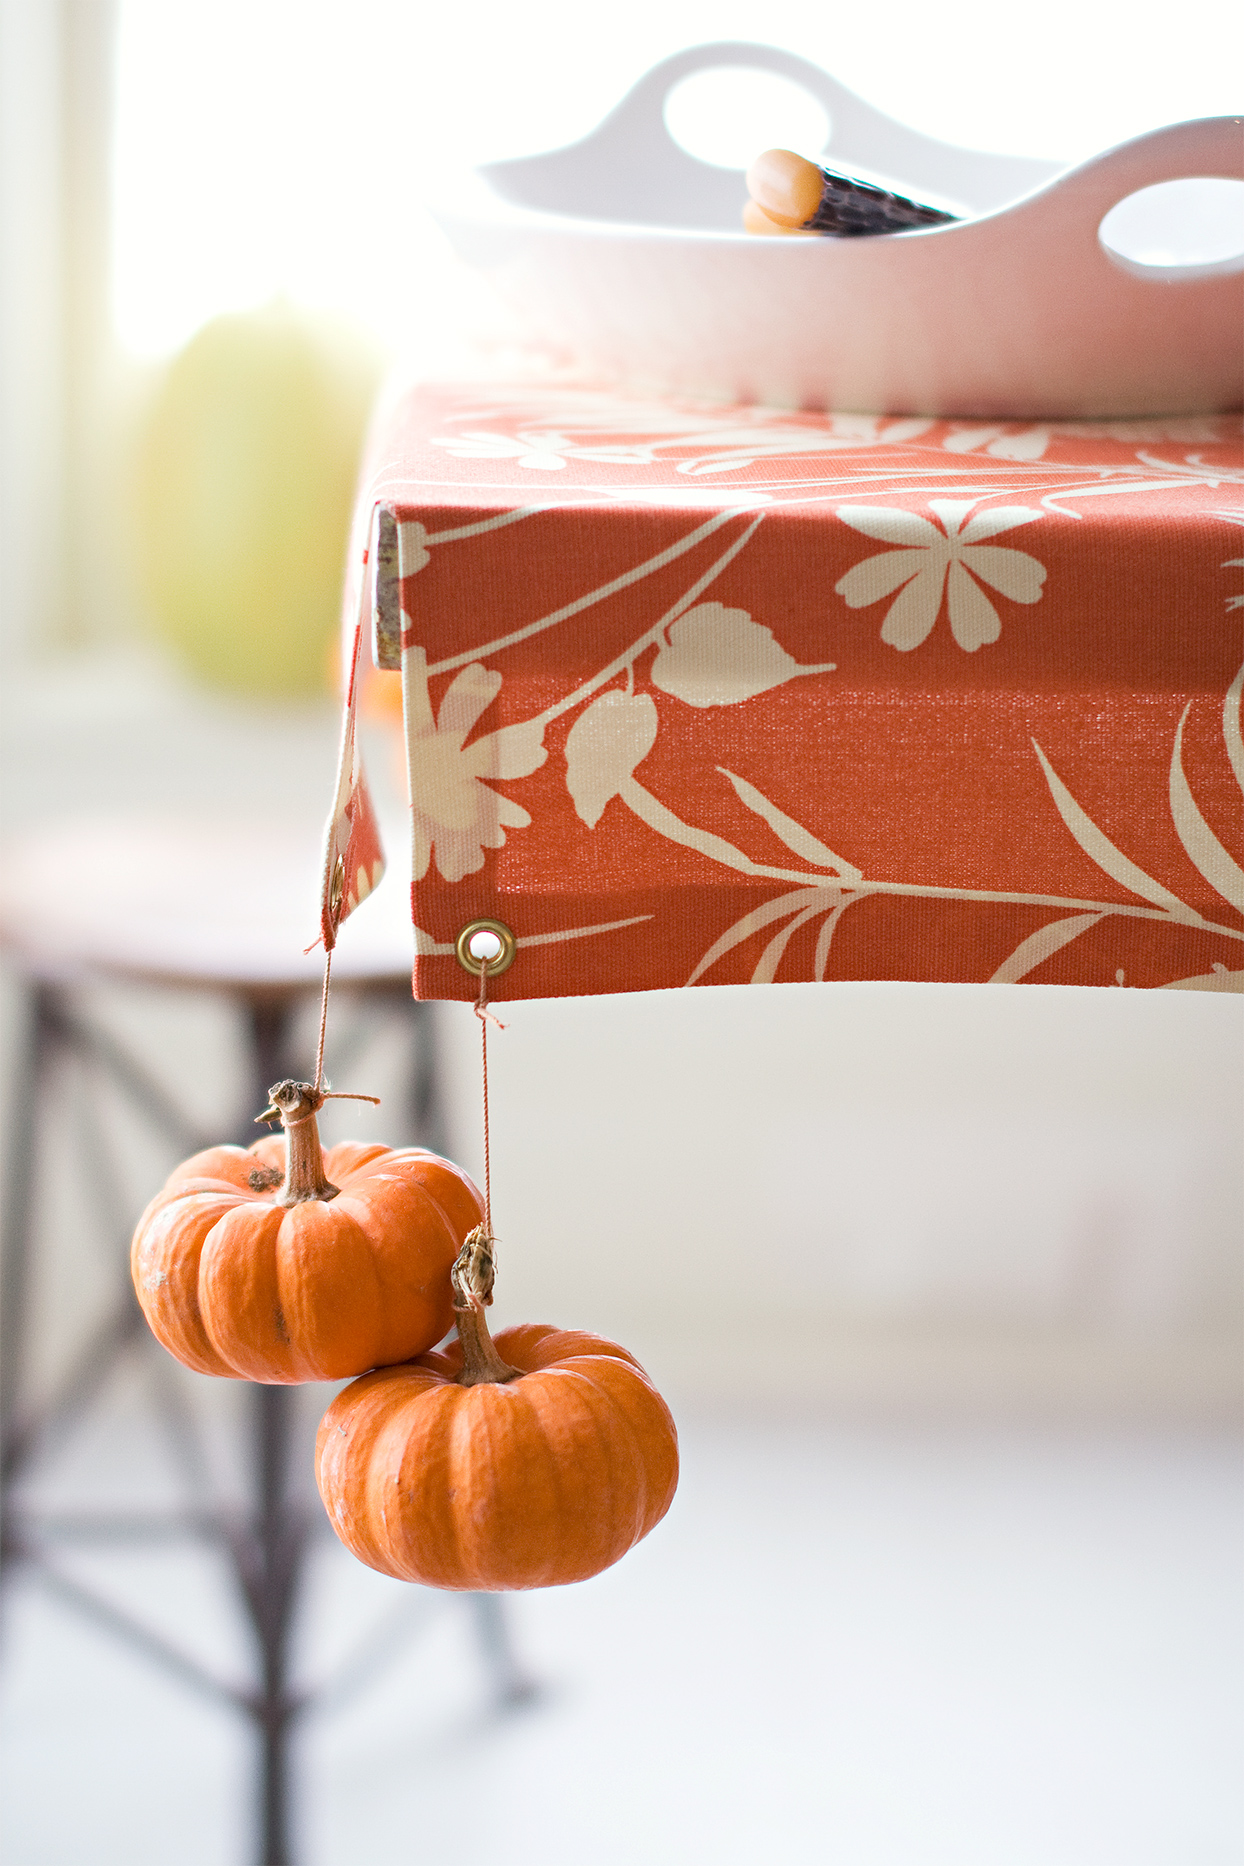 small pumpkins attatched as tablecloth weights